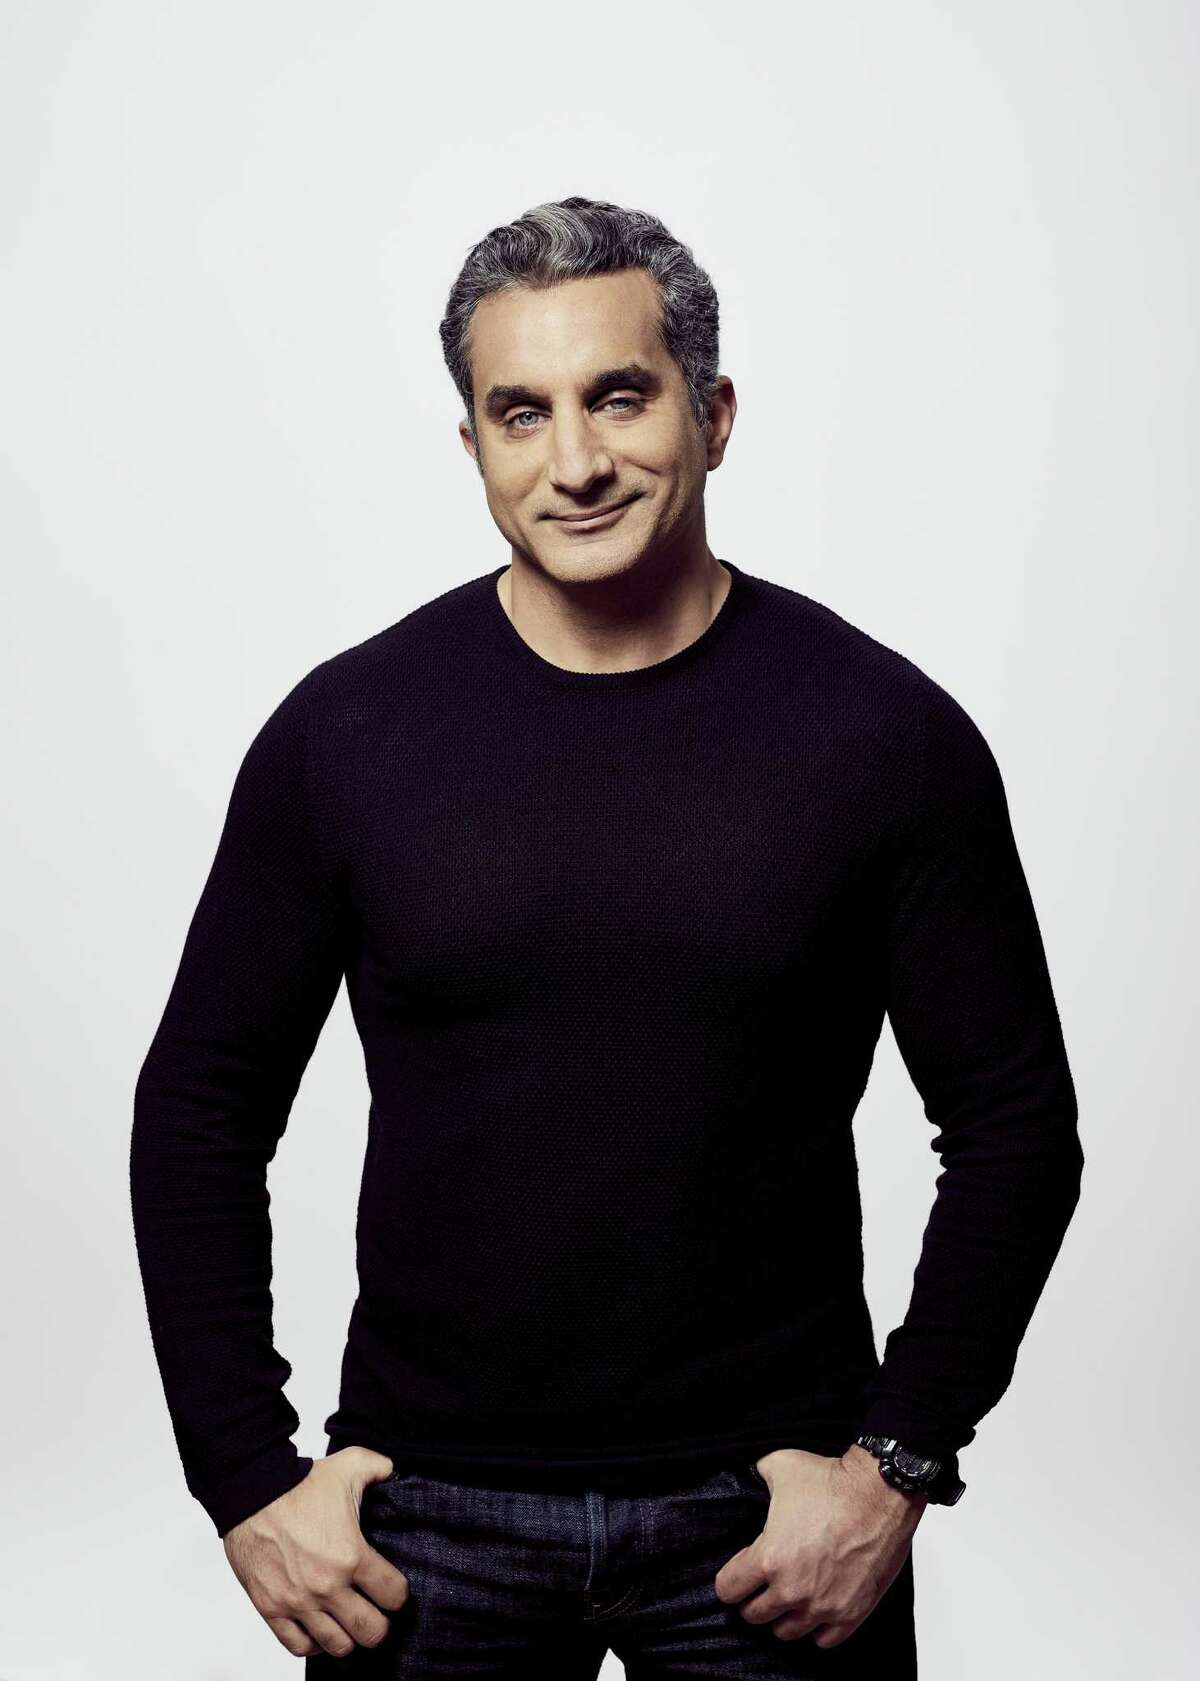 Bassem Youssef will do standup comedy at The Stress Factory